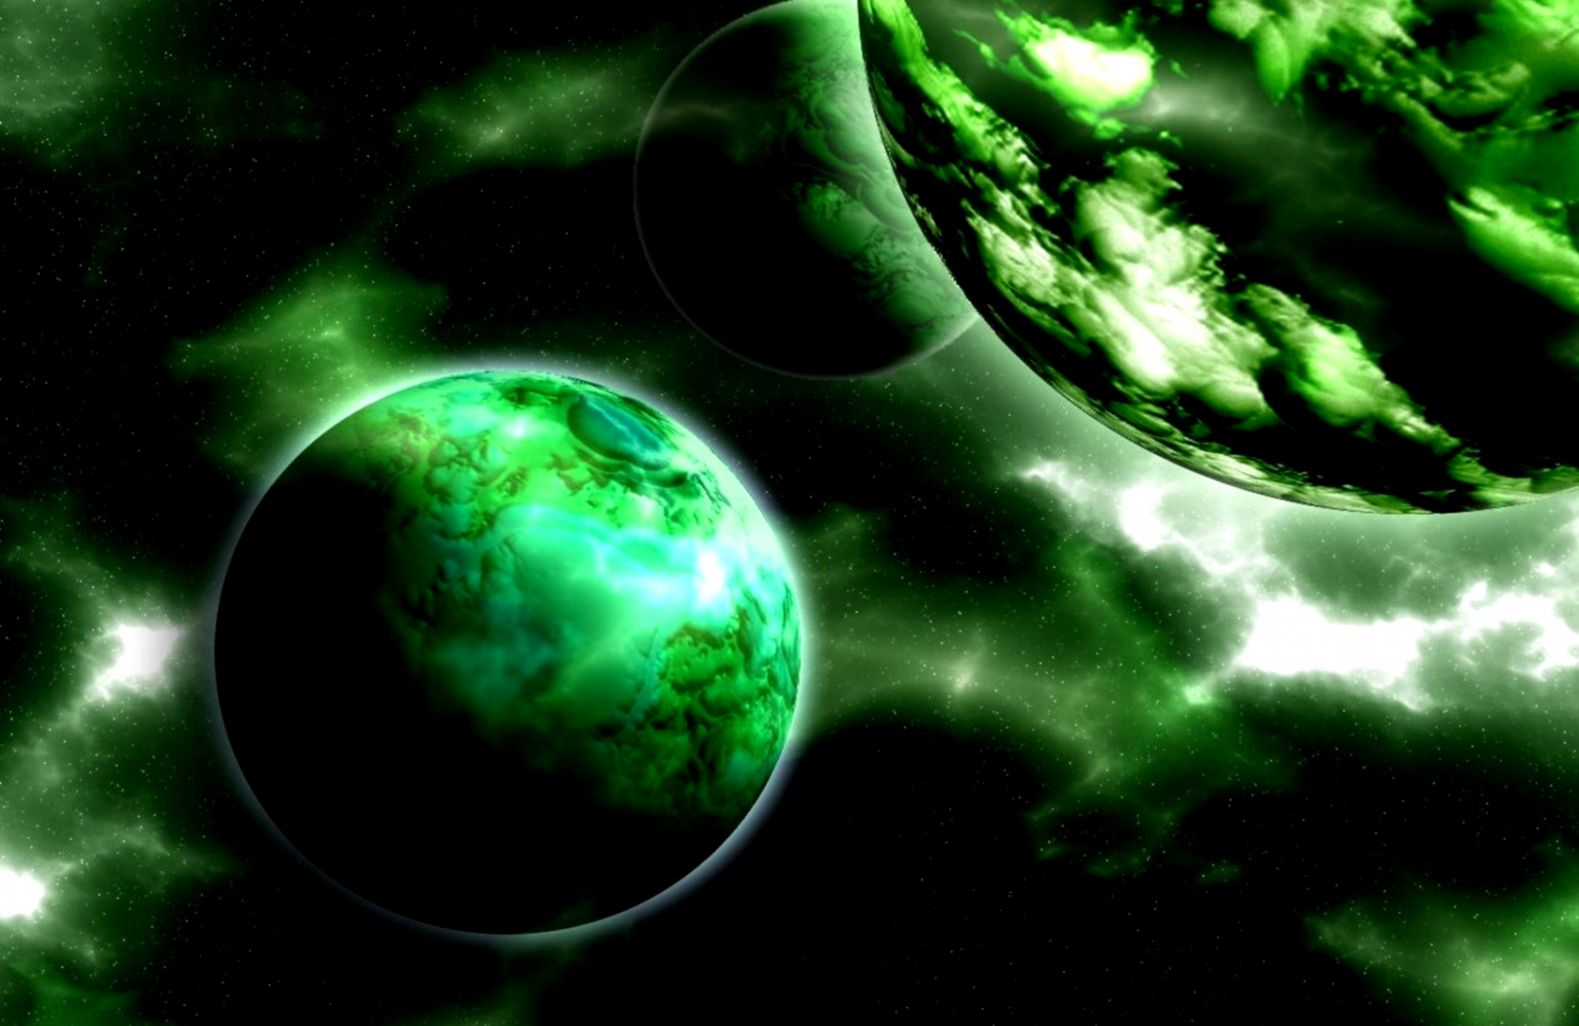 Space Planet Wallpaper Hd 1080p Wallpapers Abstract